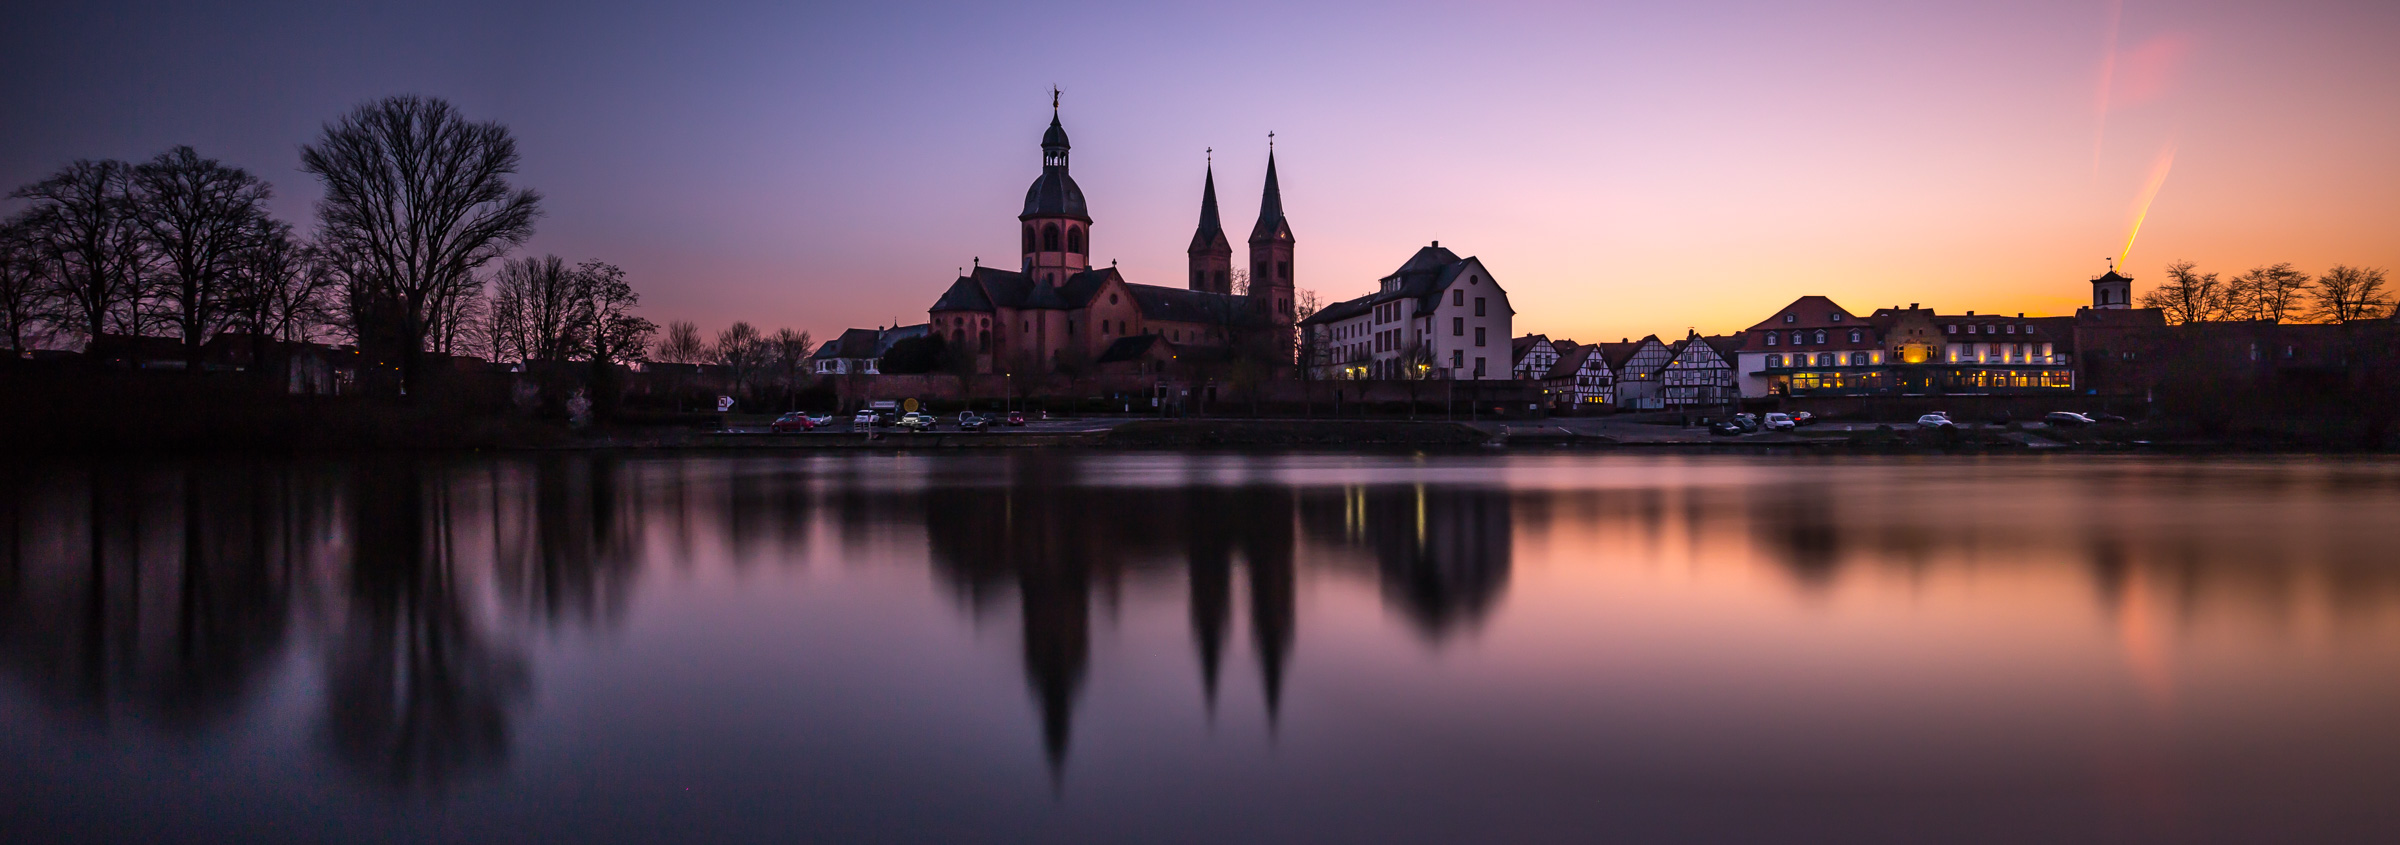 Seligenstadt - Germany - City Photography